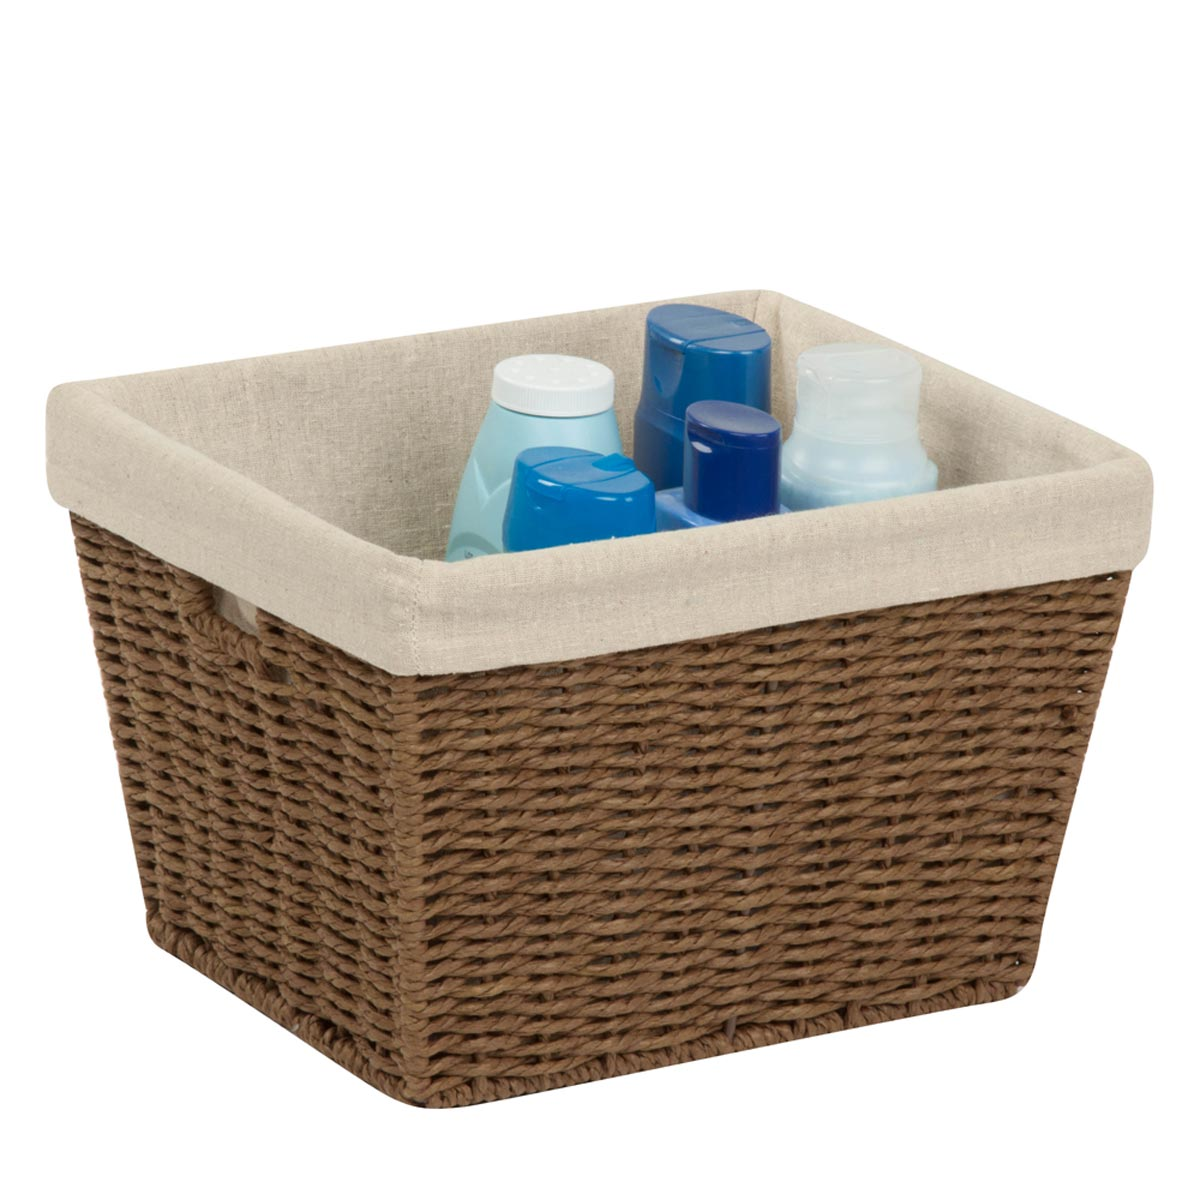 10 in. x 12 in. x 8 in. Brown Parchment Cord Storage Basket with Liner, Medium